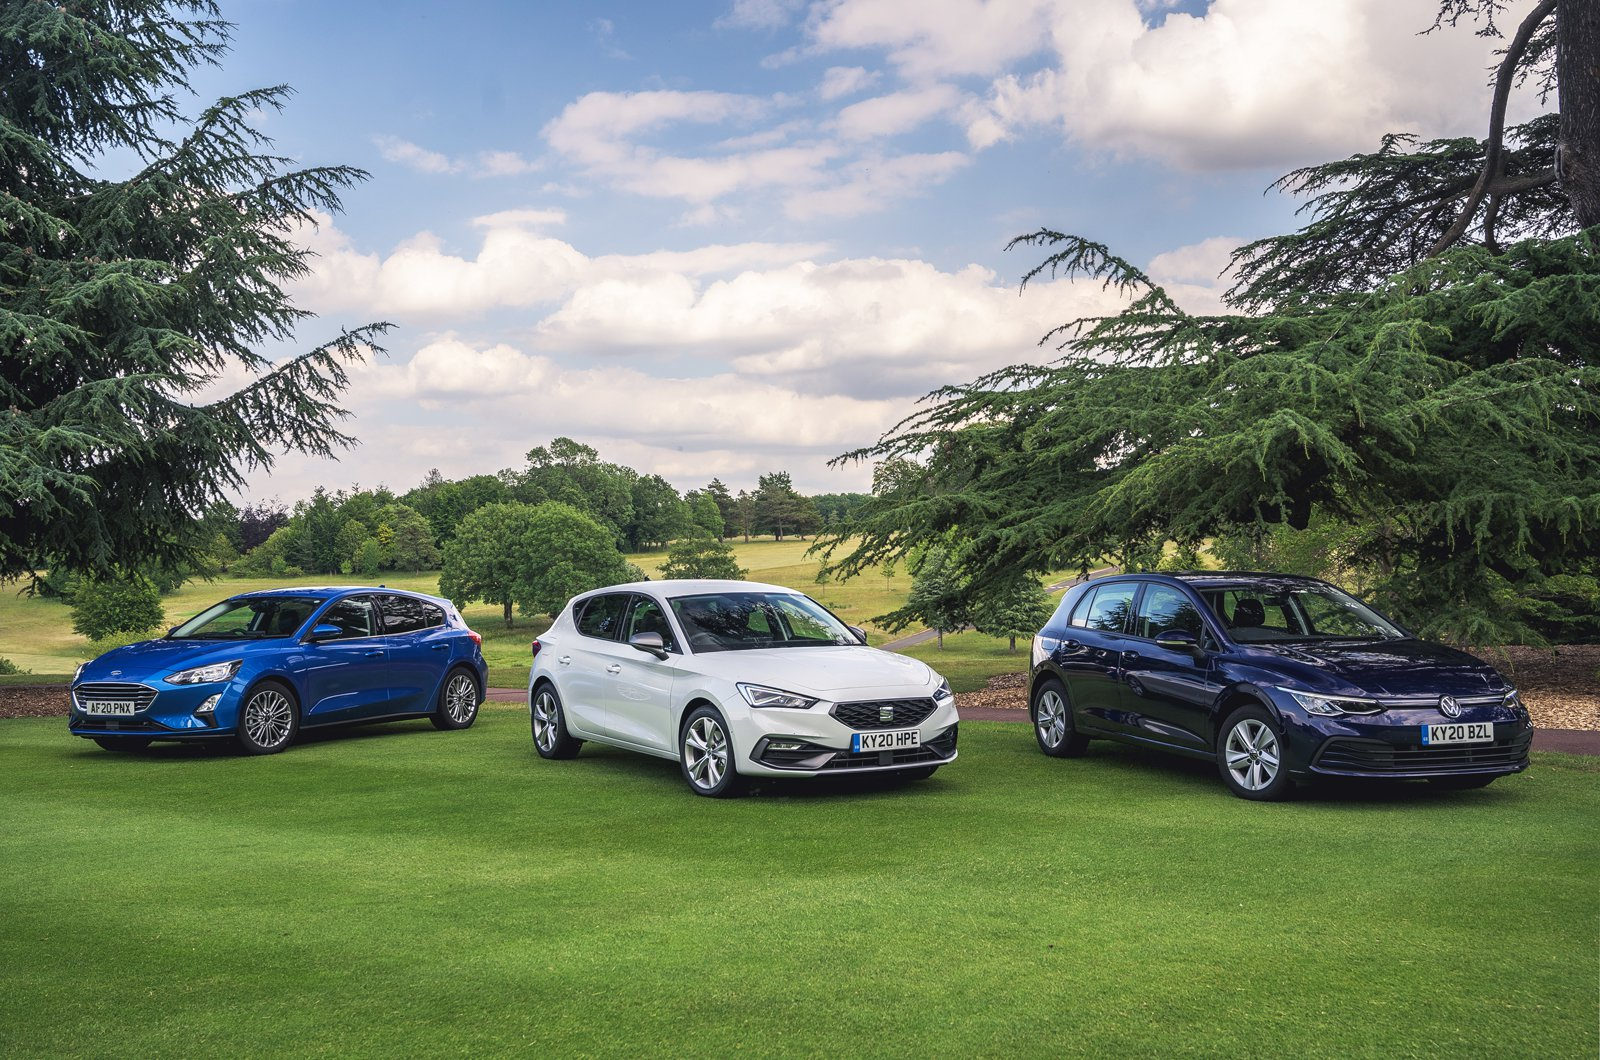 Ford Focus vs Seat Leon vs Volkswagen Golf